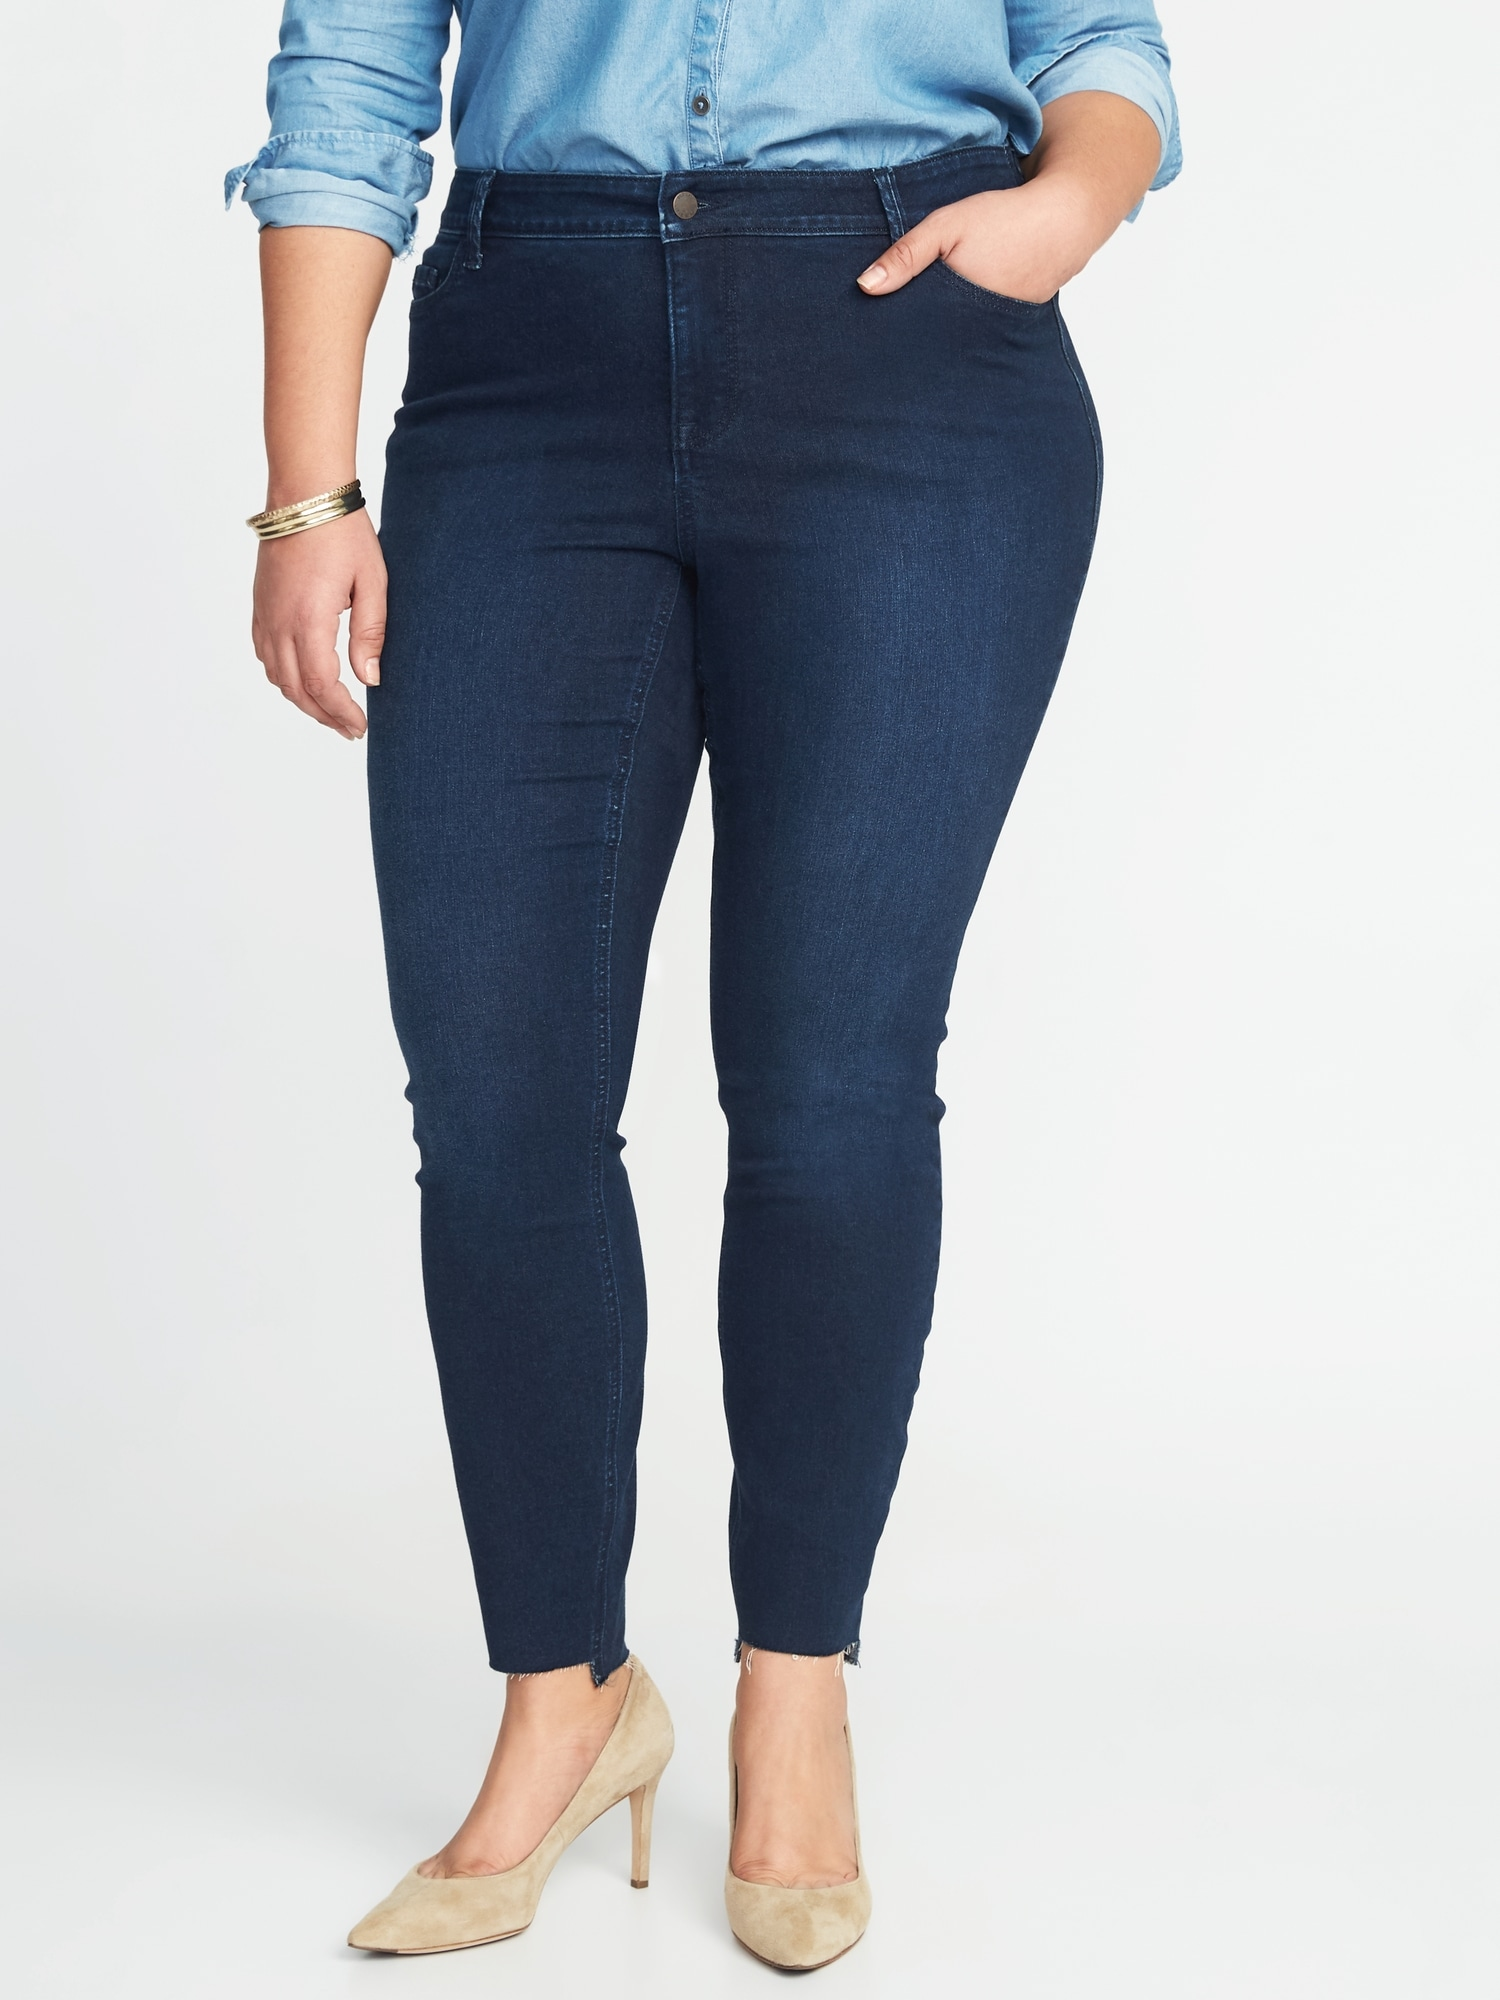 34750aff9e91 High-Rise Secret-Slim Plus-Size Step-Hem Rockstar Jeans